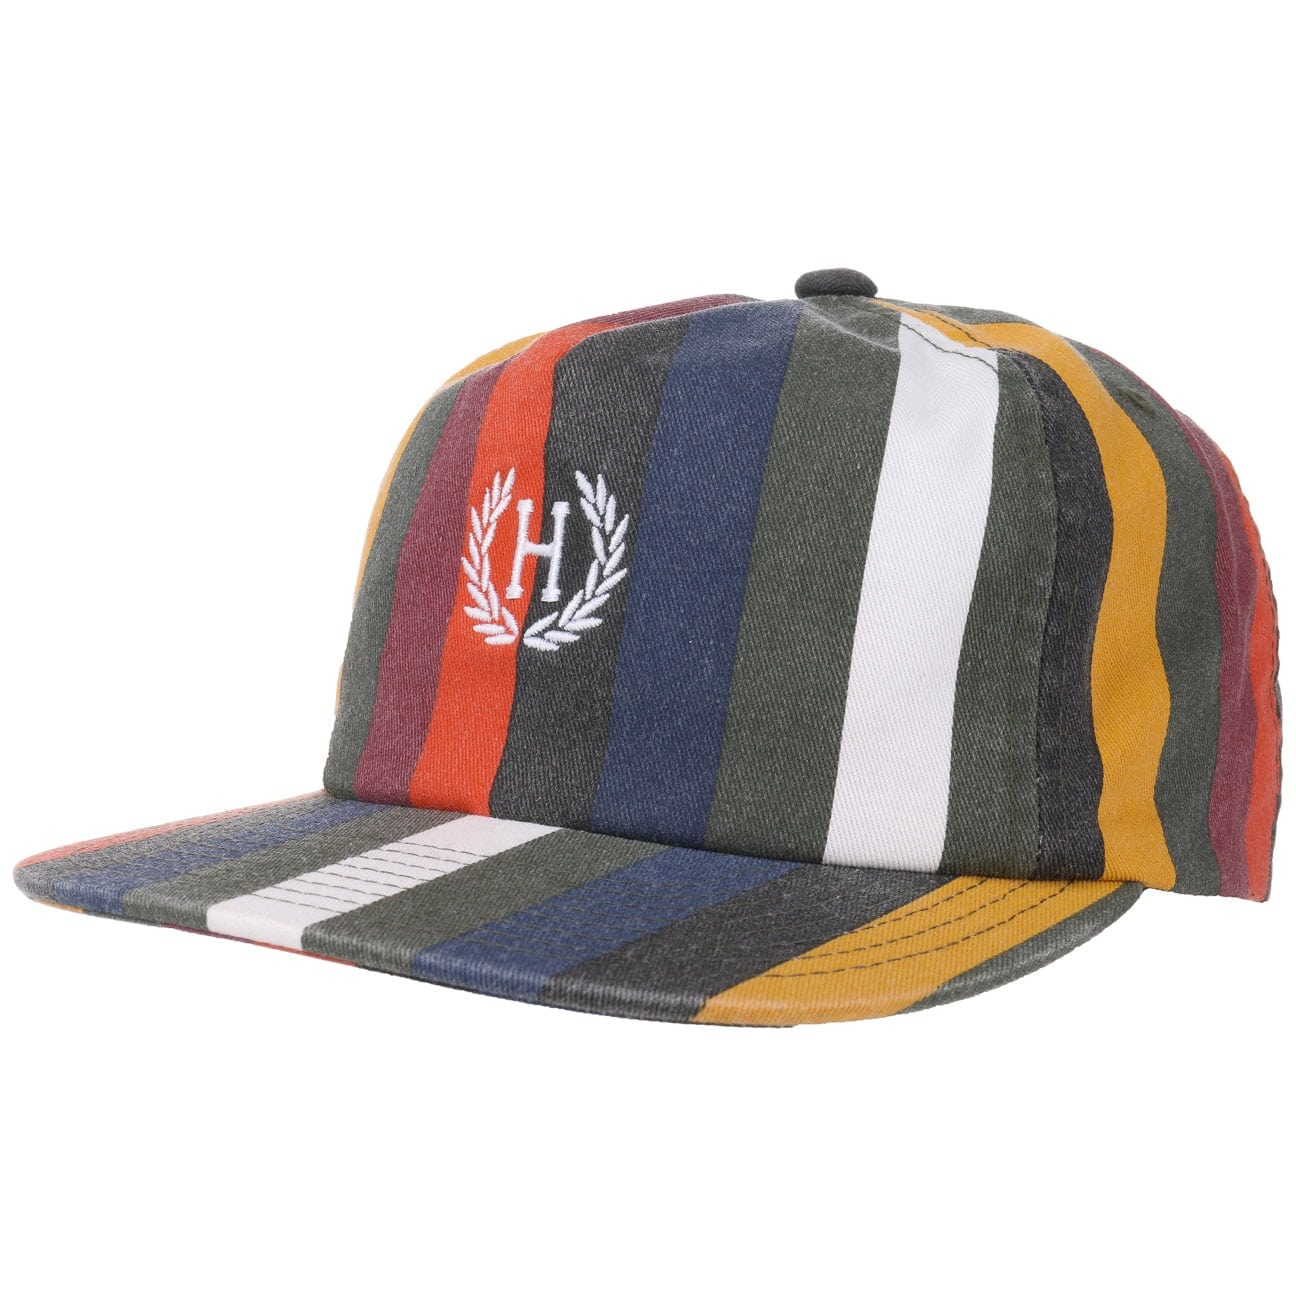 Gorra Colours Strapback by HUF  gorra de baseball